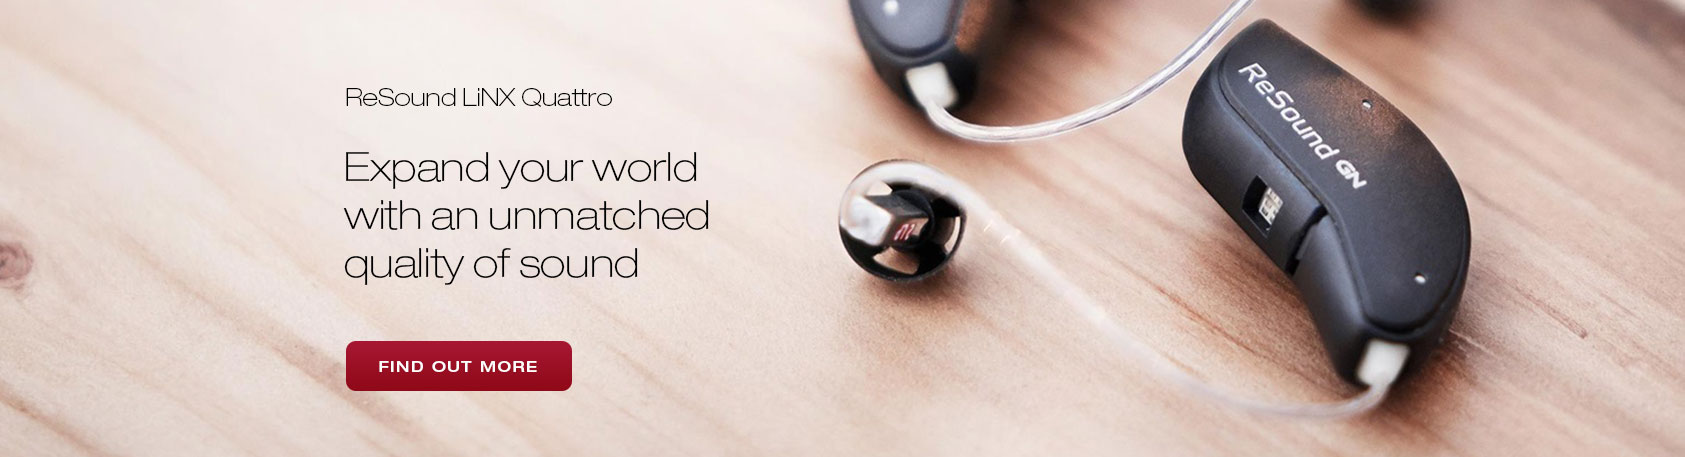 ReSound LiNX Quattro Banner - Better Hearing Aid Center